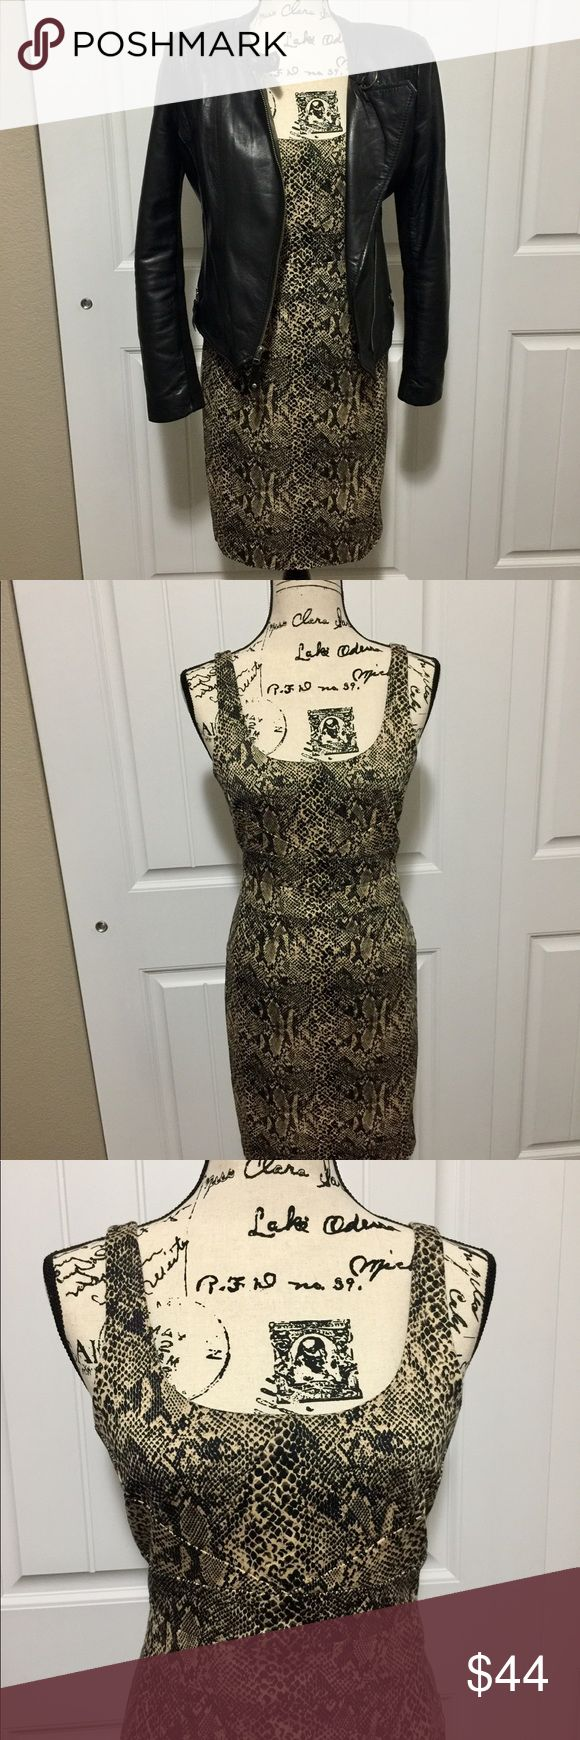 Michael Kors snakeskin-pattern dress This sleeve-less Michael Kors dress with fun snakeskin pattern is awesome!  It is lined and check out the photos to see the bodice-details.  Just what you need for a fun office-dress or even a night out! MICHAEL Michael Kors Dresses Midi